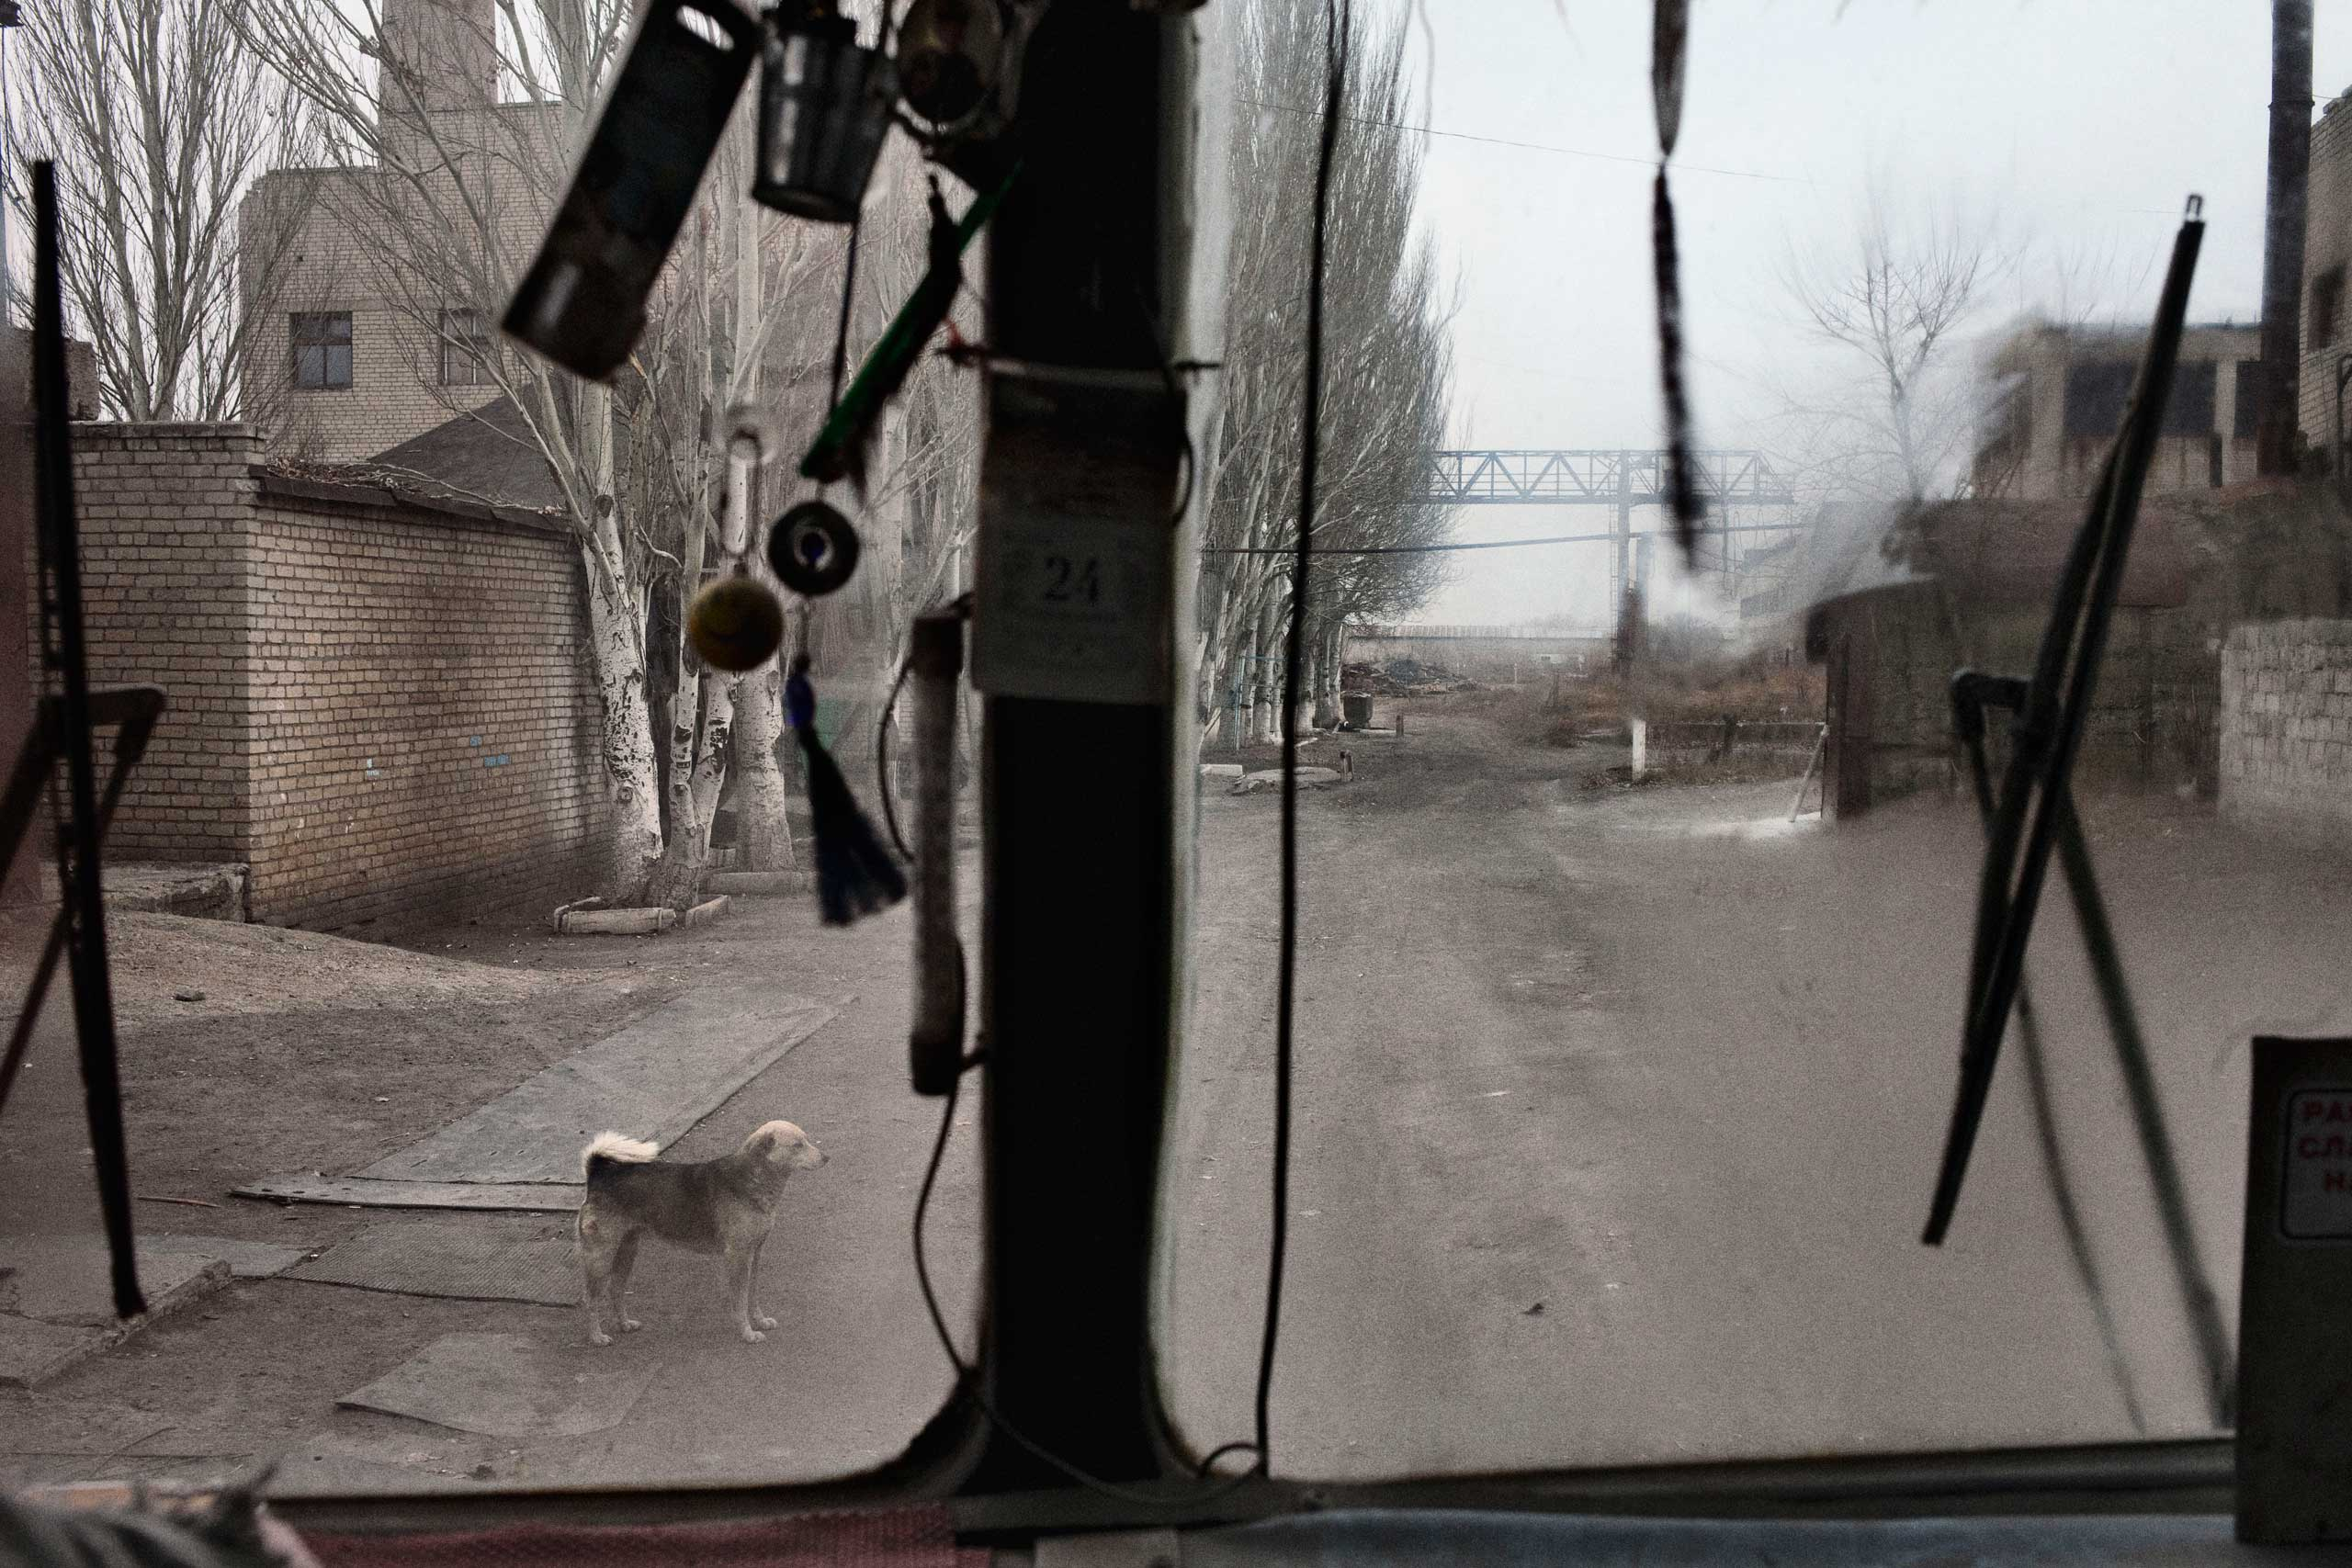 A view from the bus as it approaches the entrance to the mine's deepest shaft. On the left is the shed that was hit by a shell two days earlier. Petrovskyi district, Donetsk, Ukraine. Nov. 24, 2014.